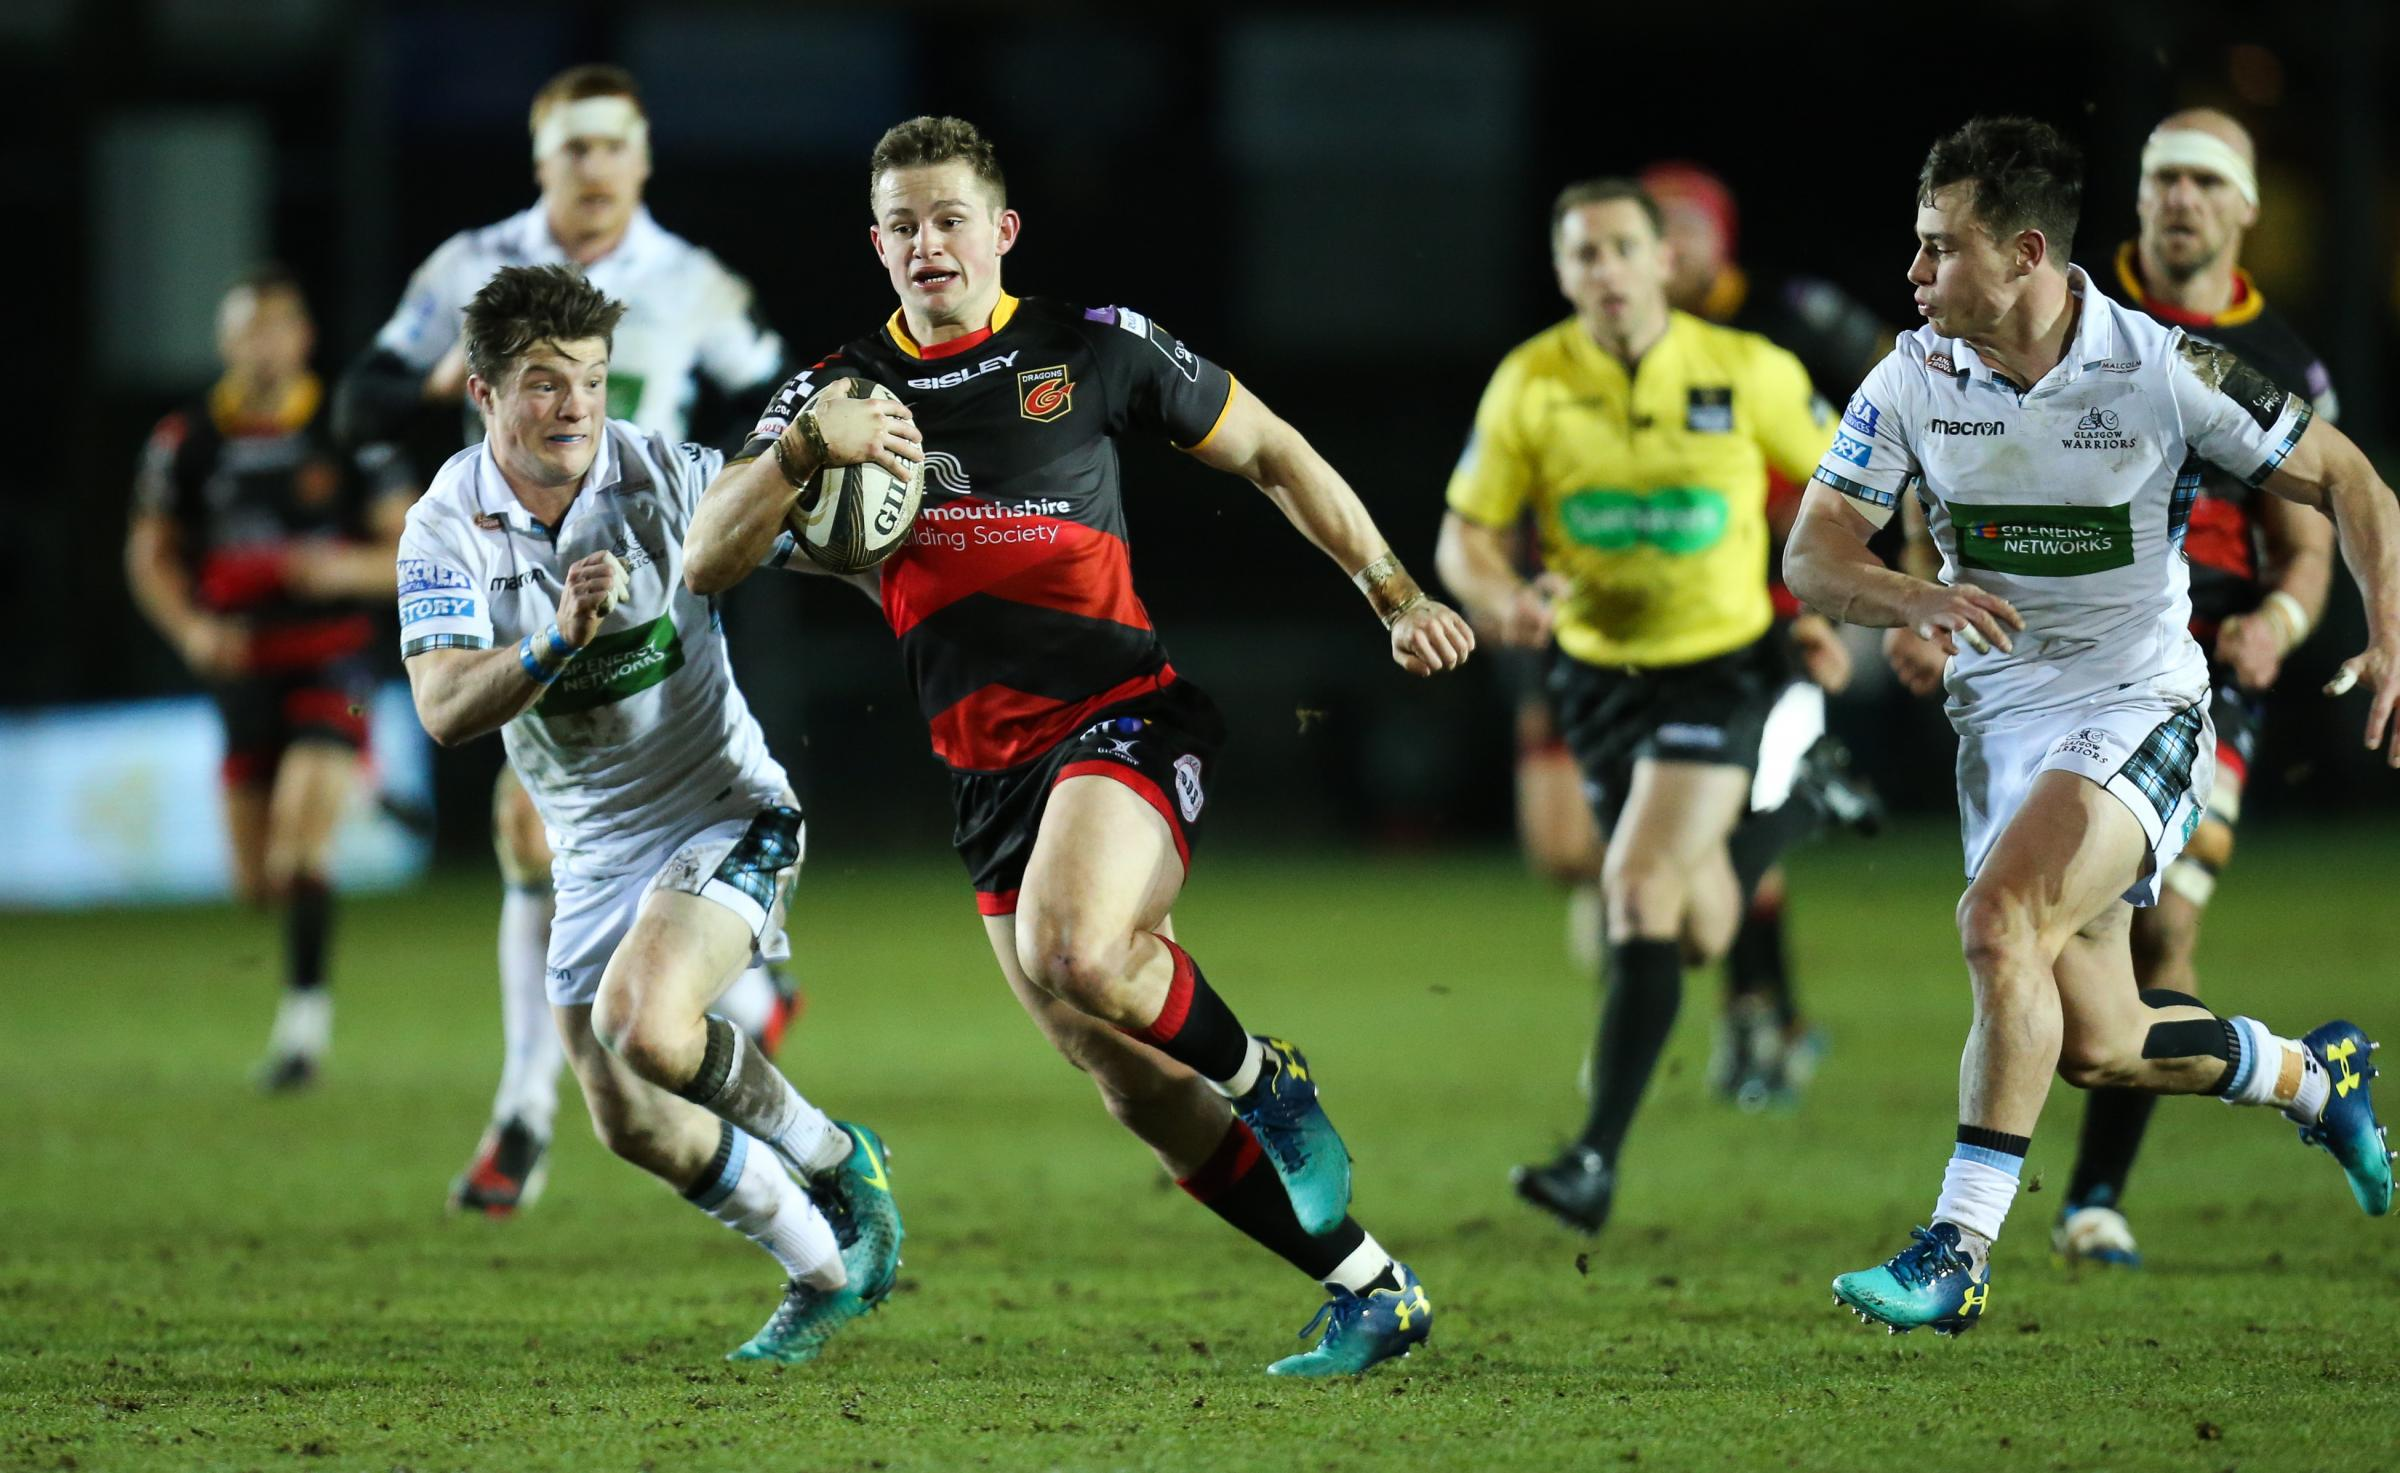 DESPERATE TO IMPRESS: Dragons wing/full-back Hallam Amos will be back in the red of Wales